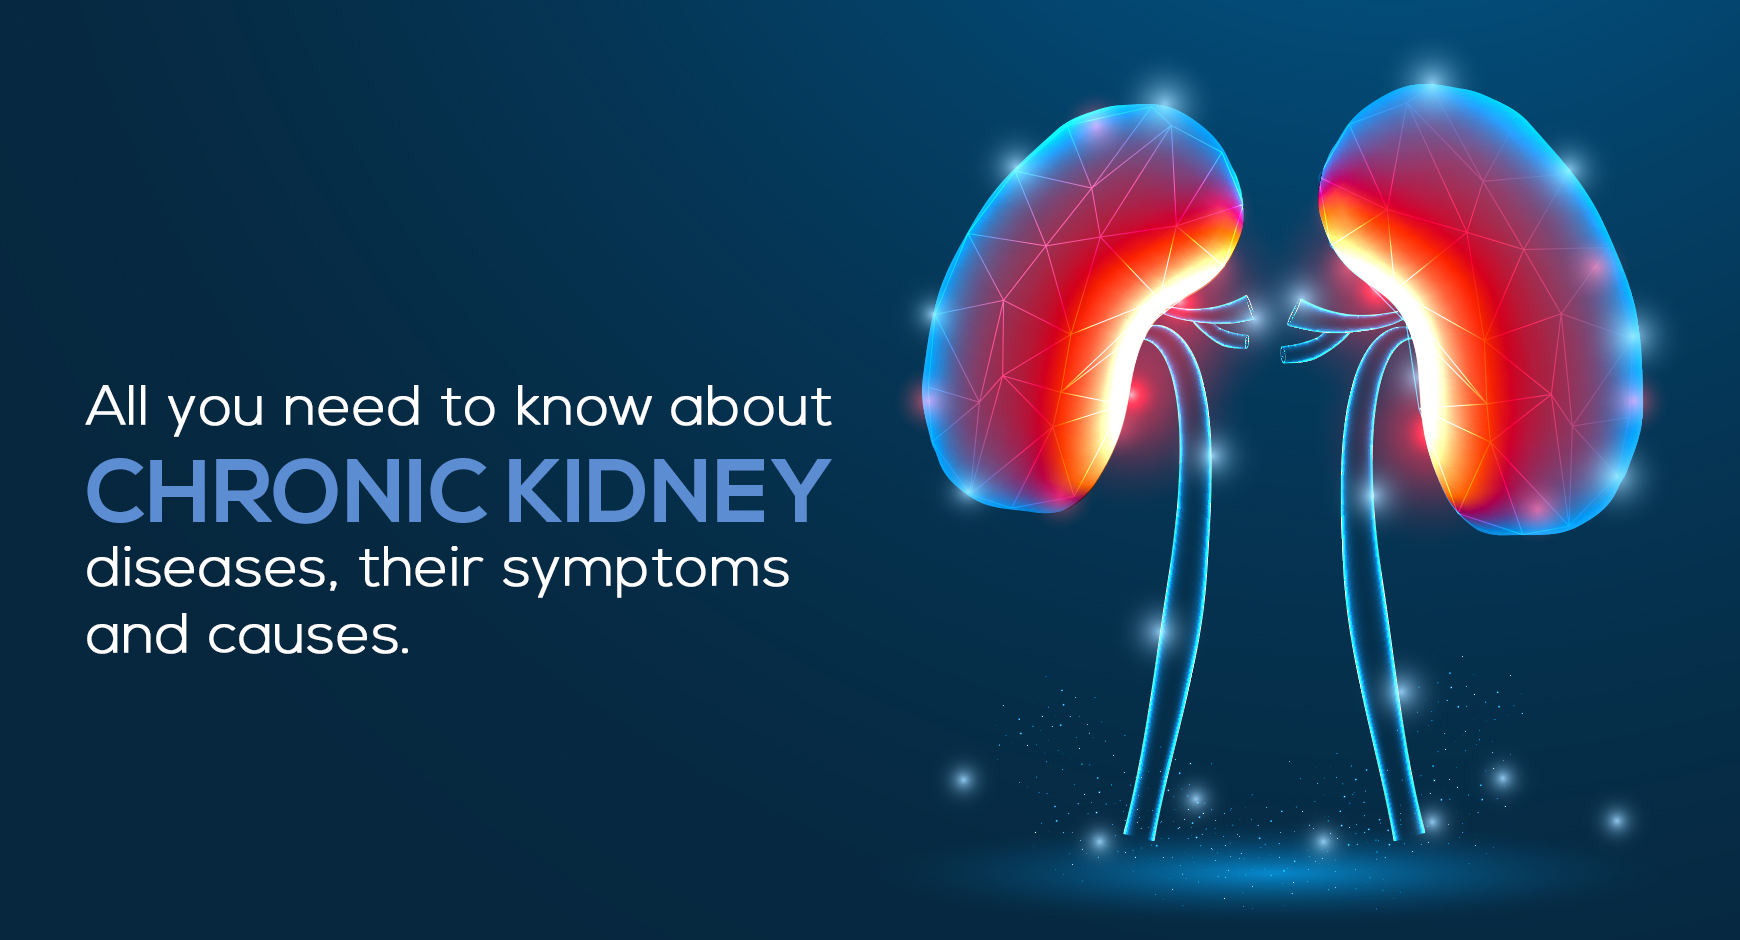 All you need to know about chronic kidney diseases, their symptoms, and causes